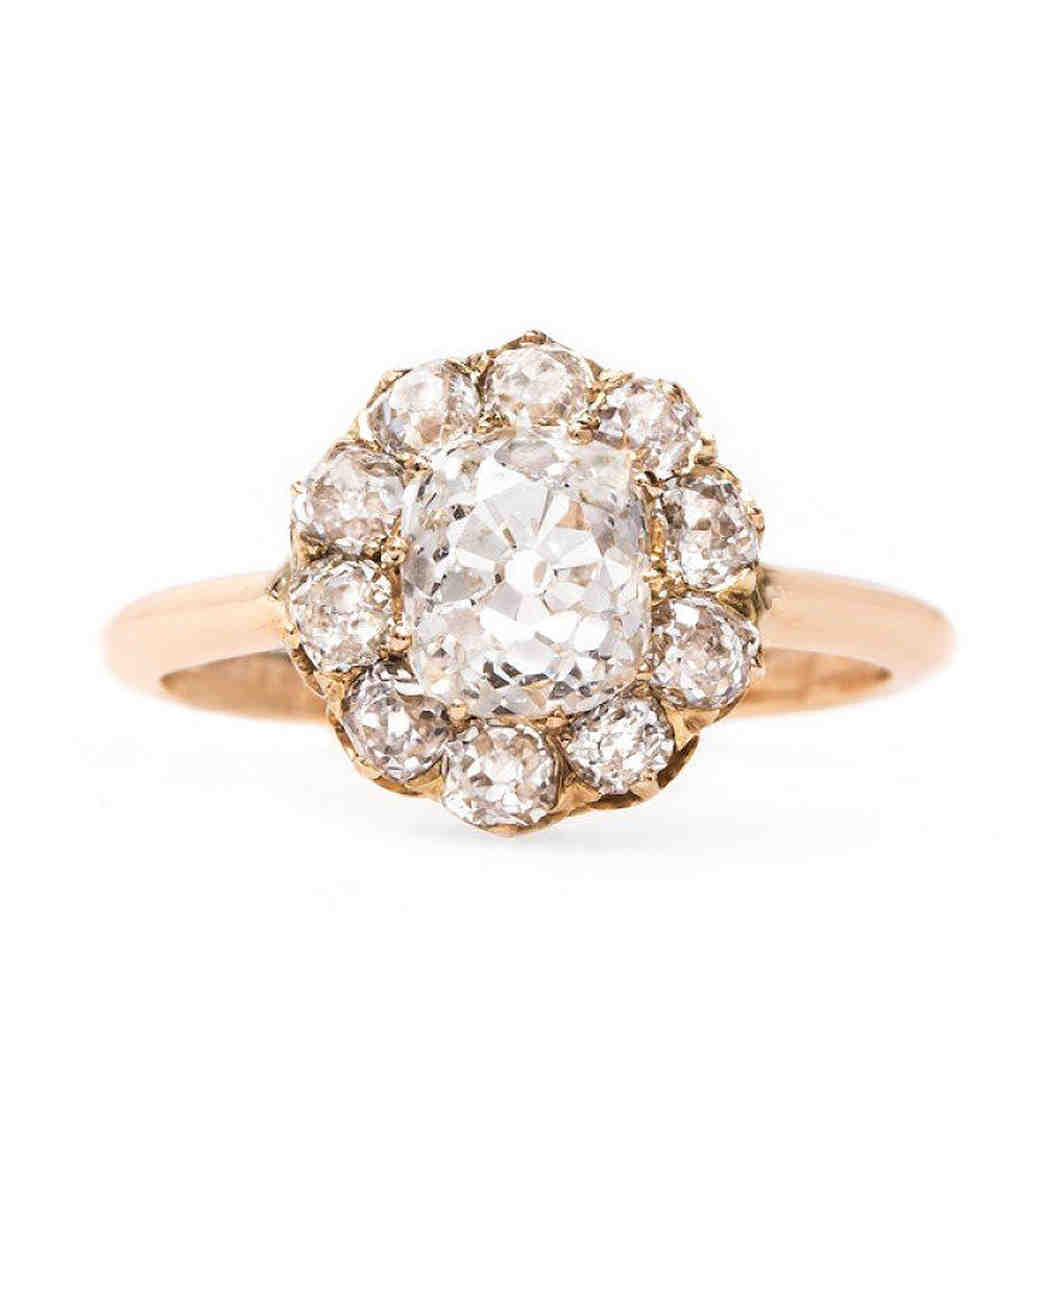 Trumpet & Horn Cushion-Cut Diamond Engagement Ring with Halo on Rose Gold Band